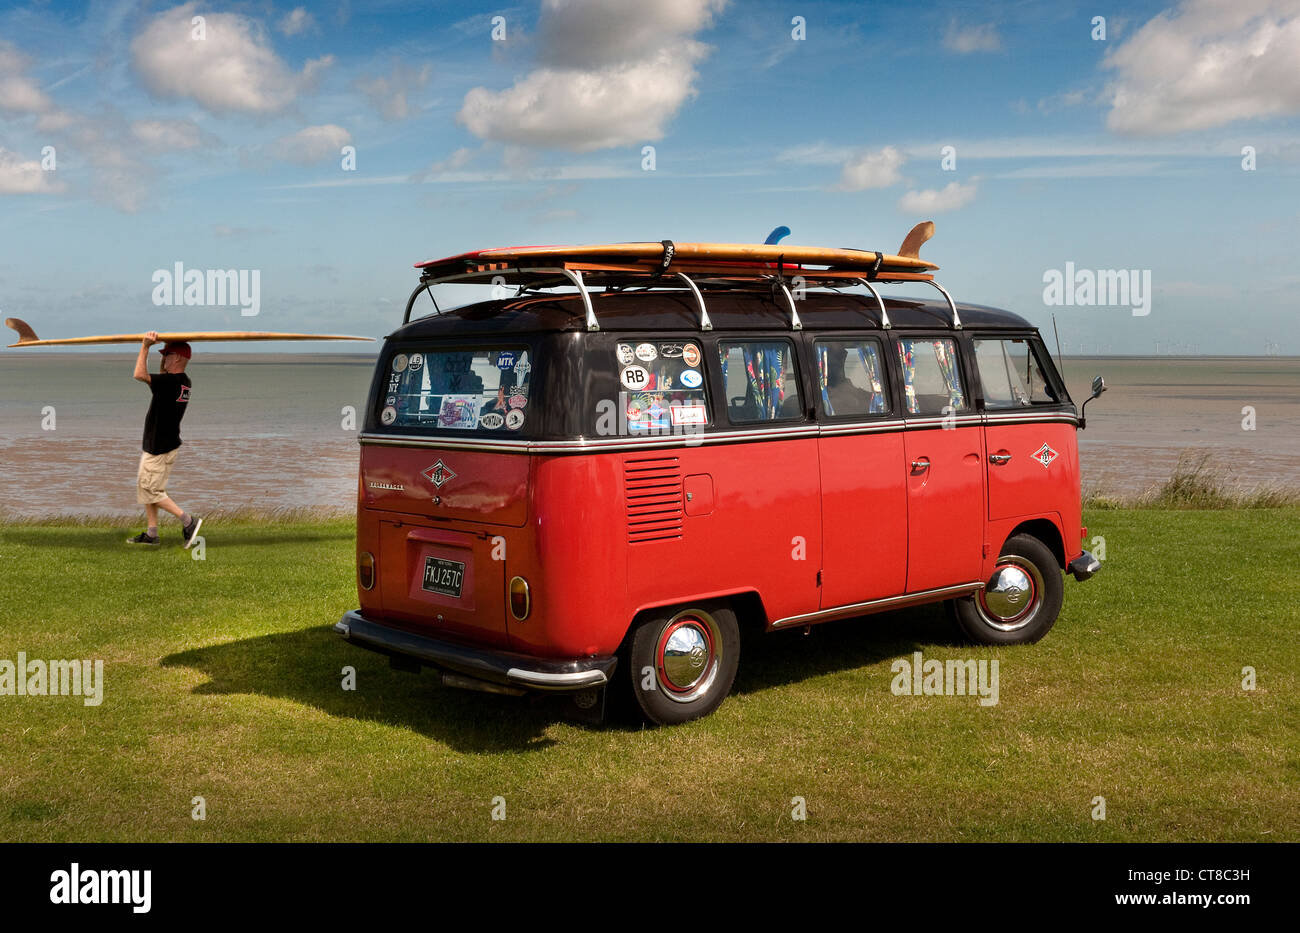 Vw Bus High Resolution Stock Photography And Images Alamy